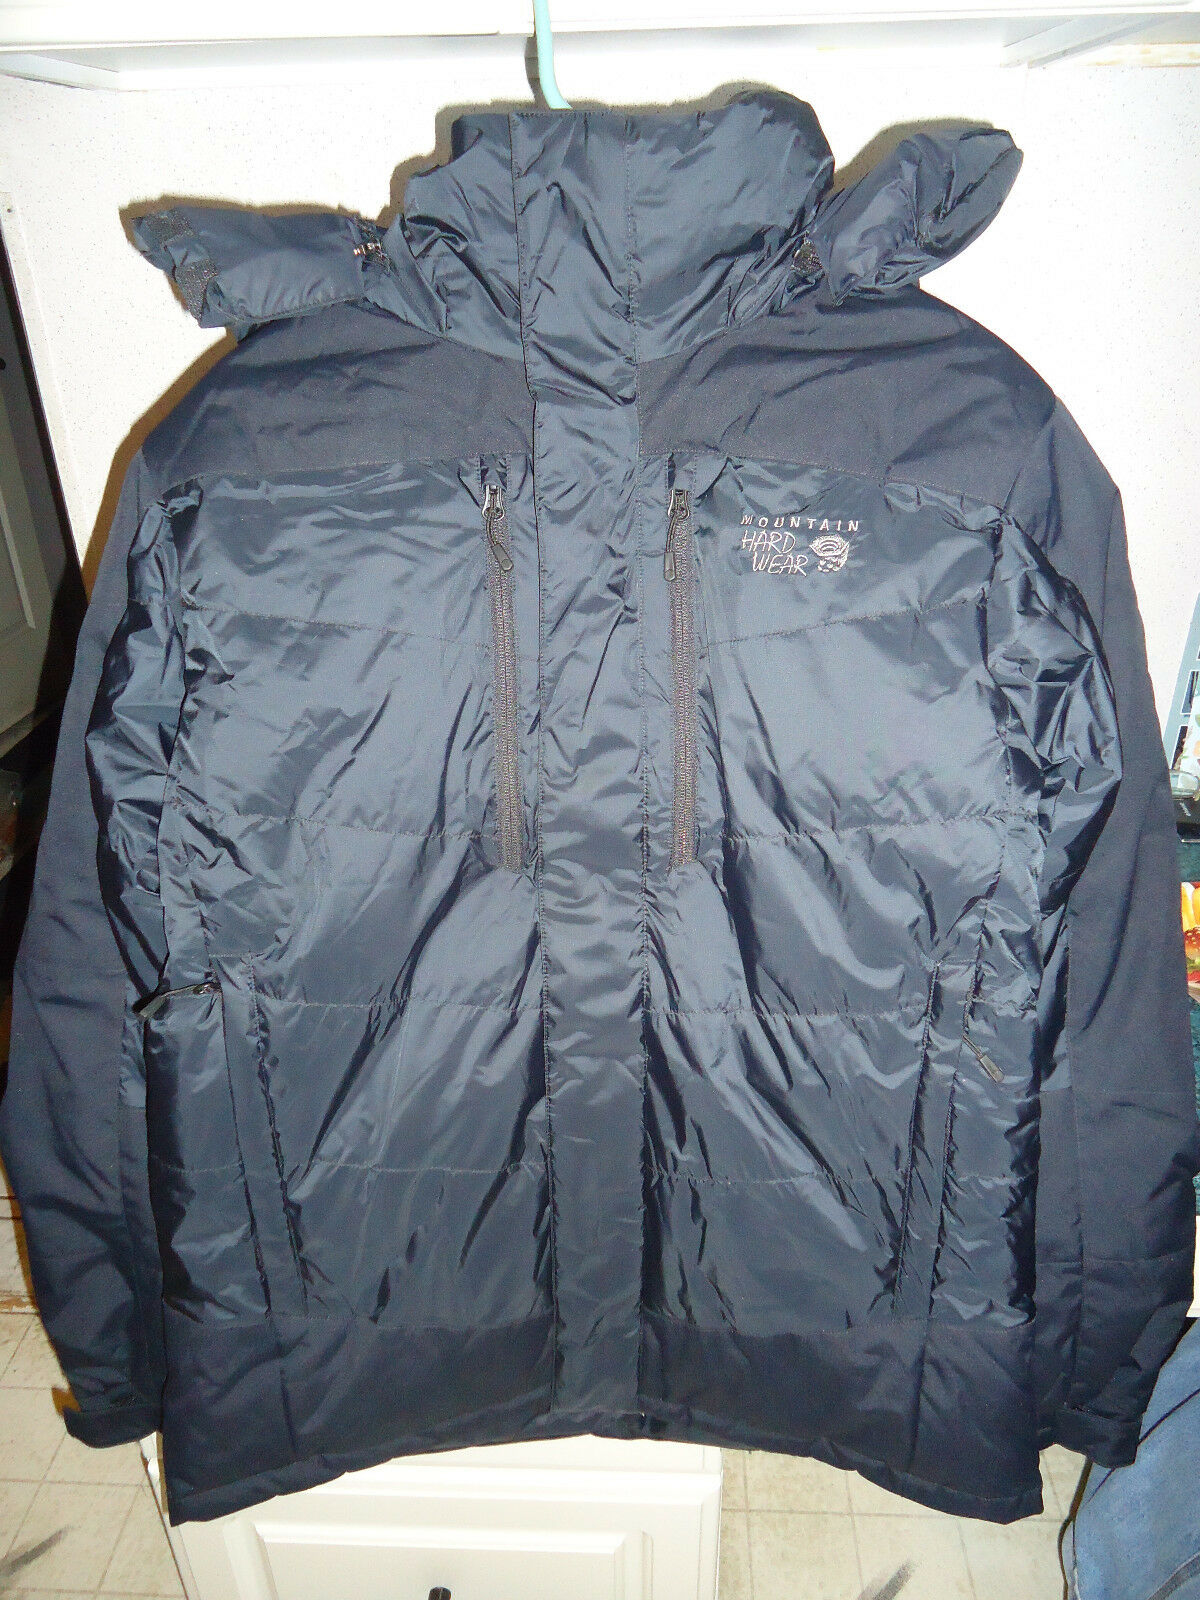 MOUNTAIN HARDWEAR GLACIER GUIDE 650 FILL DOWN  PARKA MEN'S SMALL (S) SRP  400  with 100% quality and %100 service